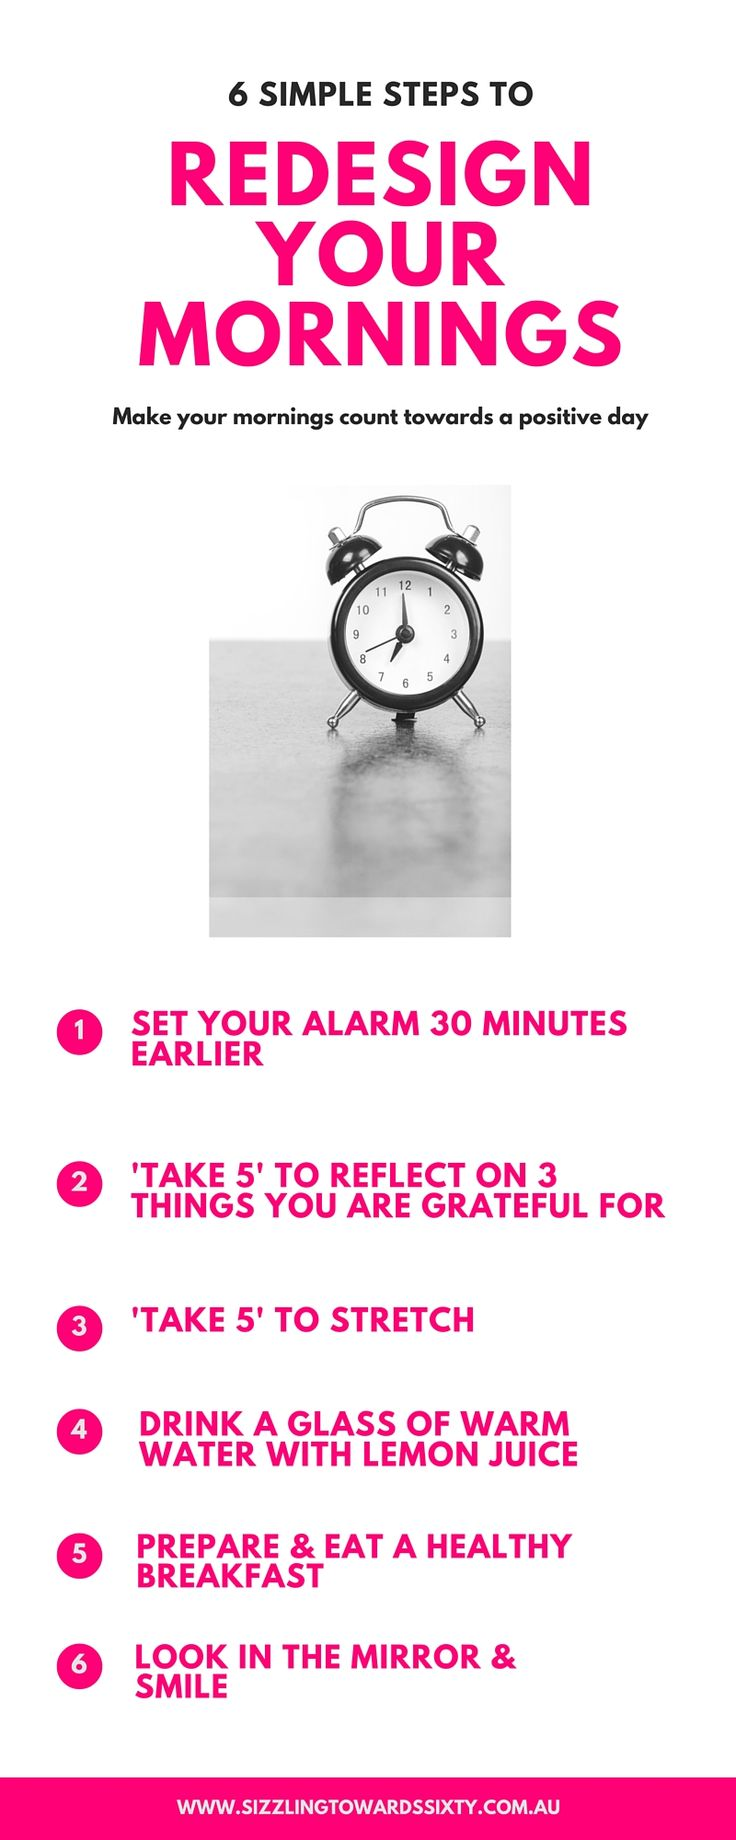 redesign your mornings